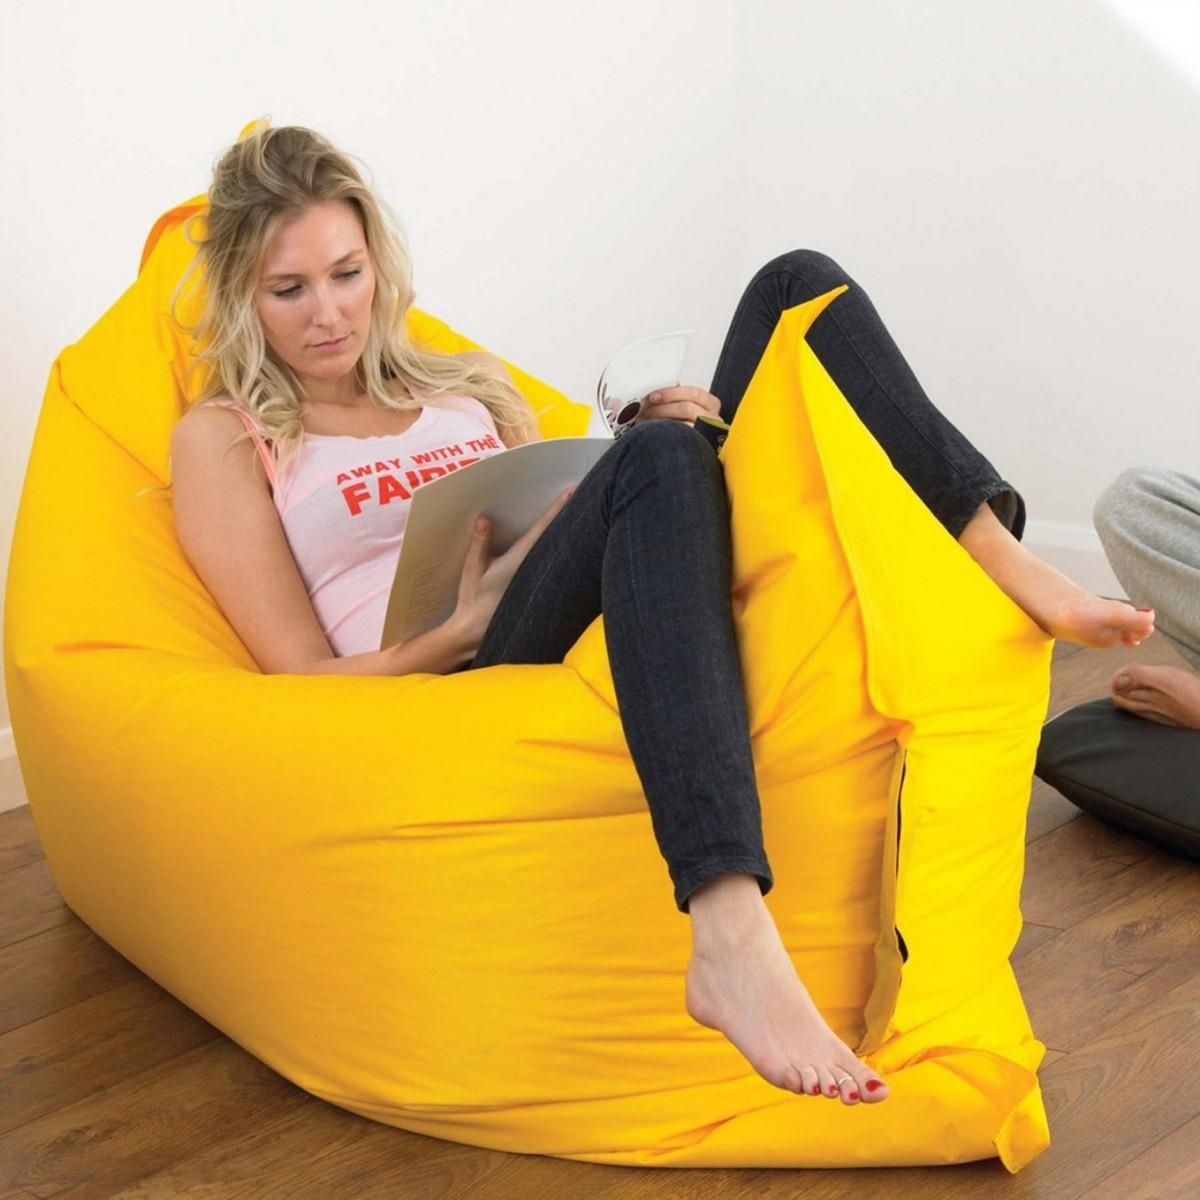 Making Giant Bean Bag Chair | Home Decorations Ideas Intended For Giant Bean Bag Chairs (Image 20 of 20)